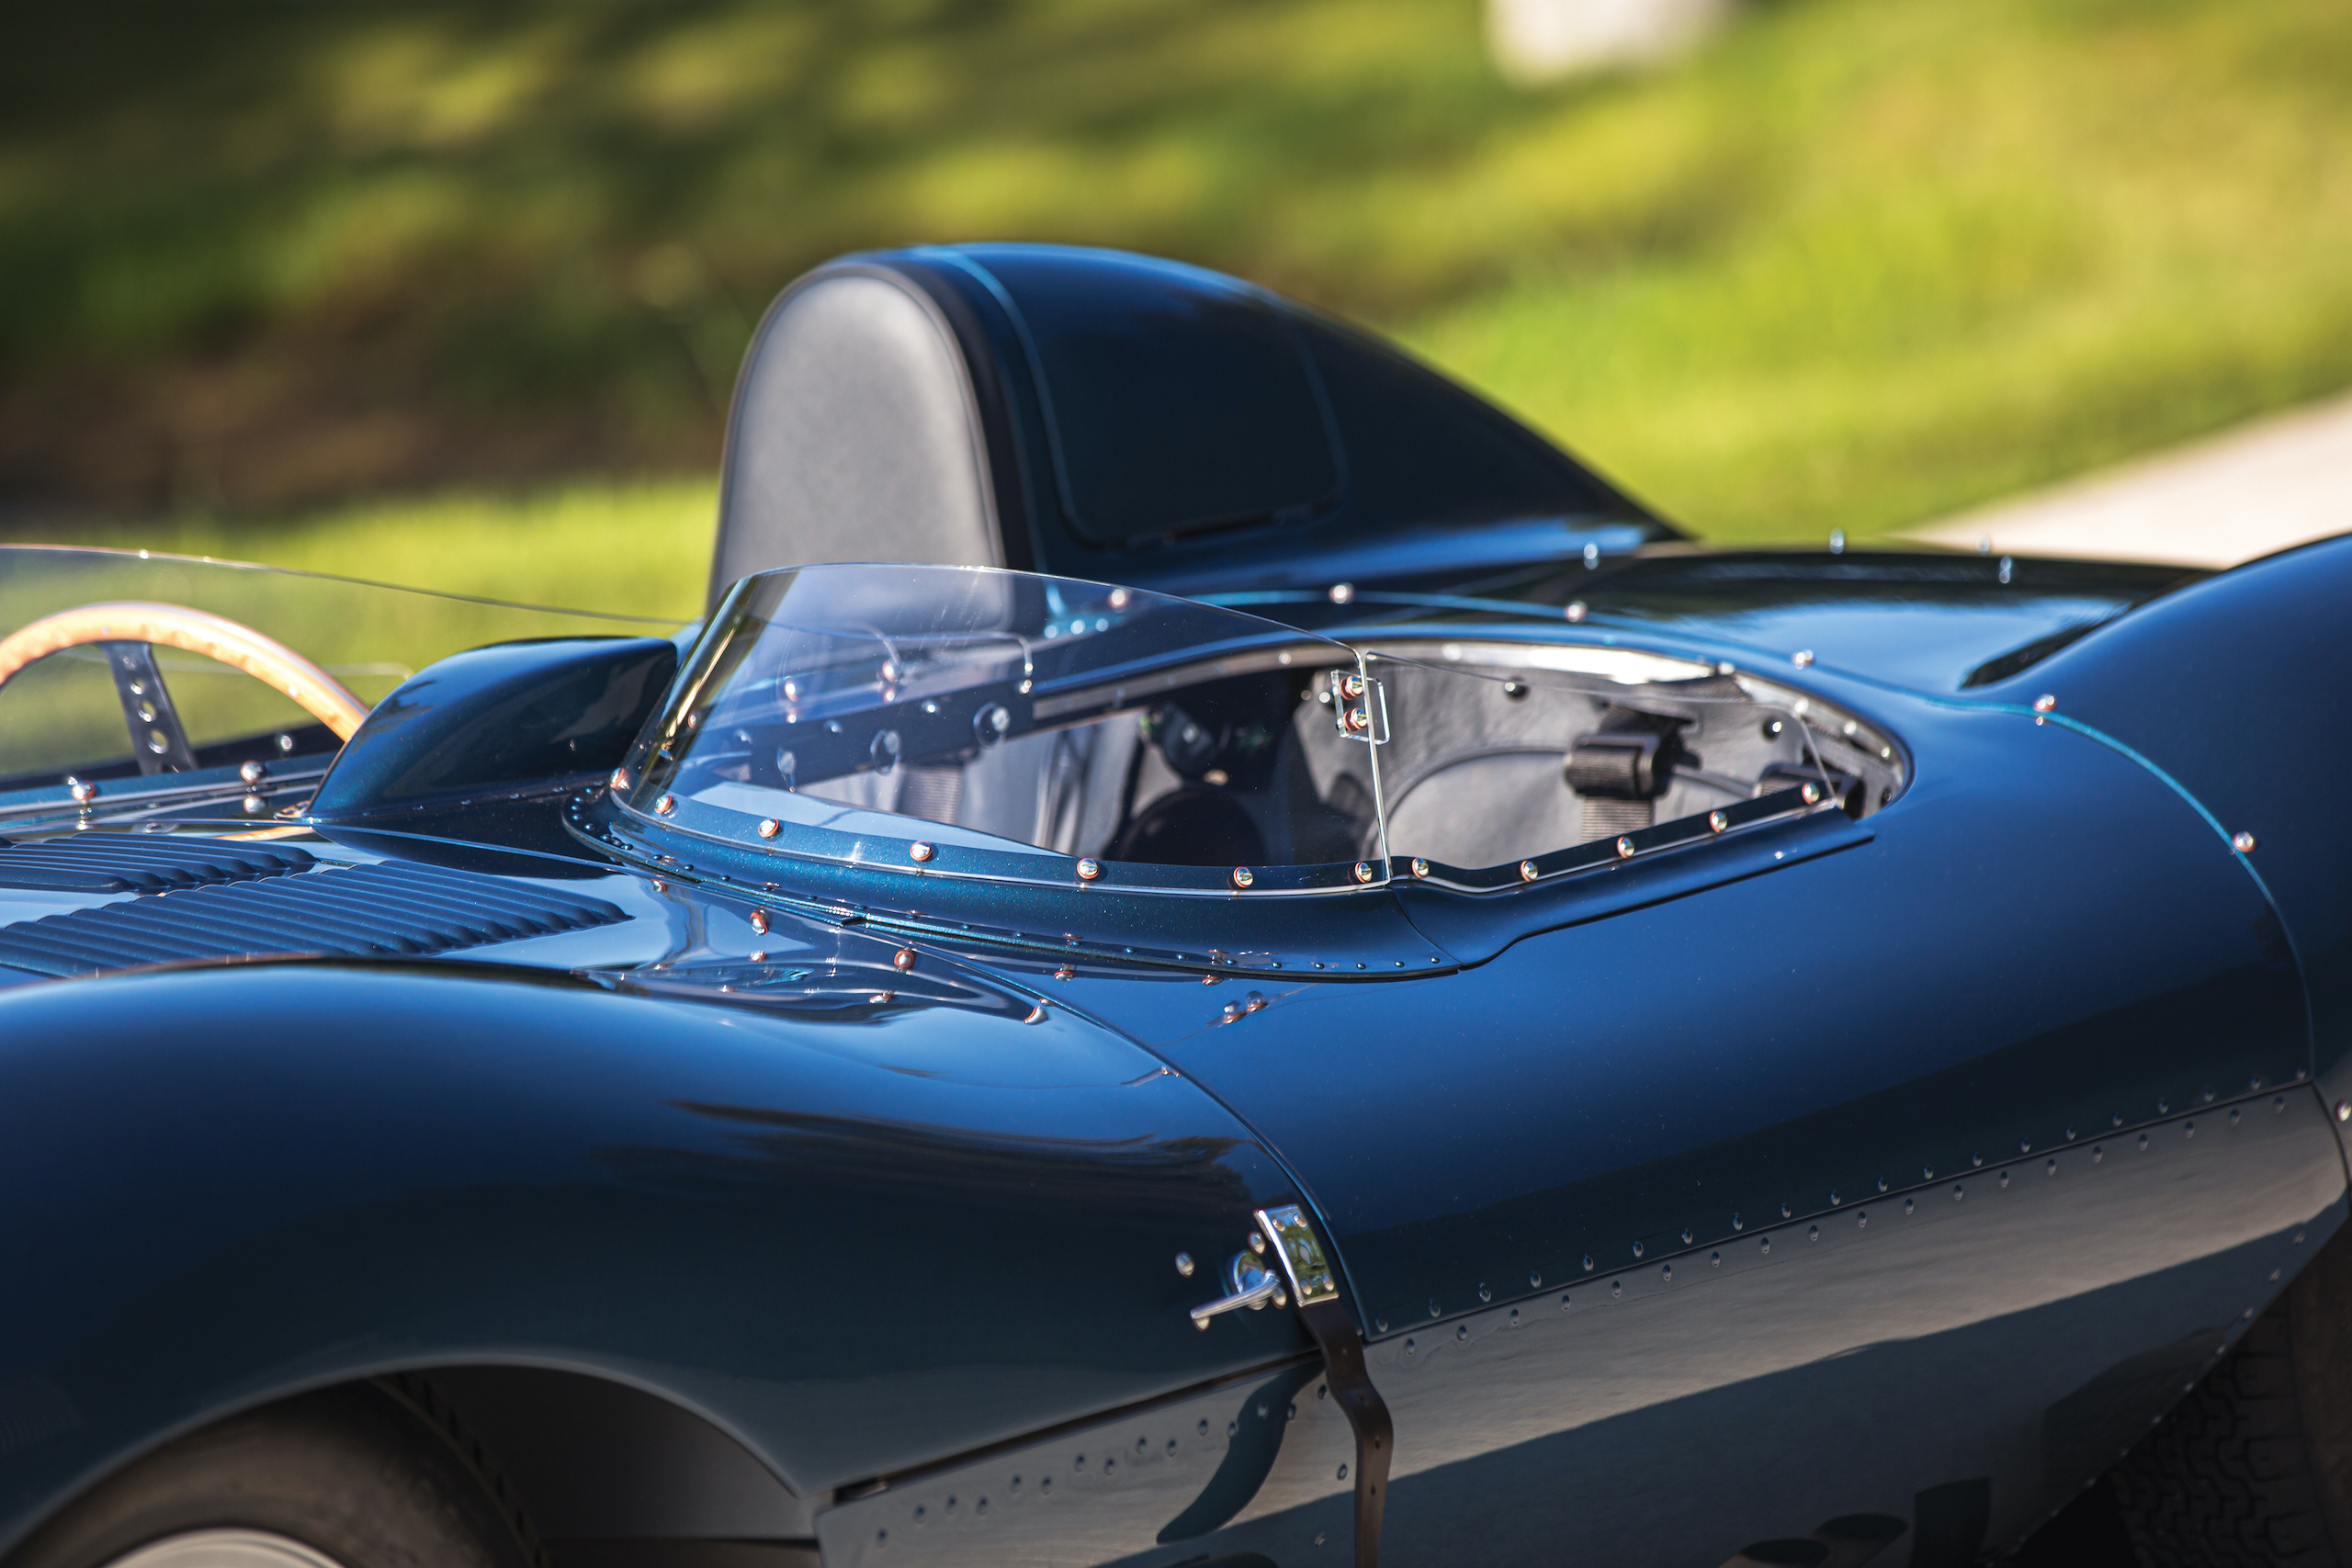 1955 Jag D-Type windscreen glass detail